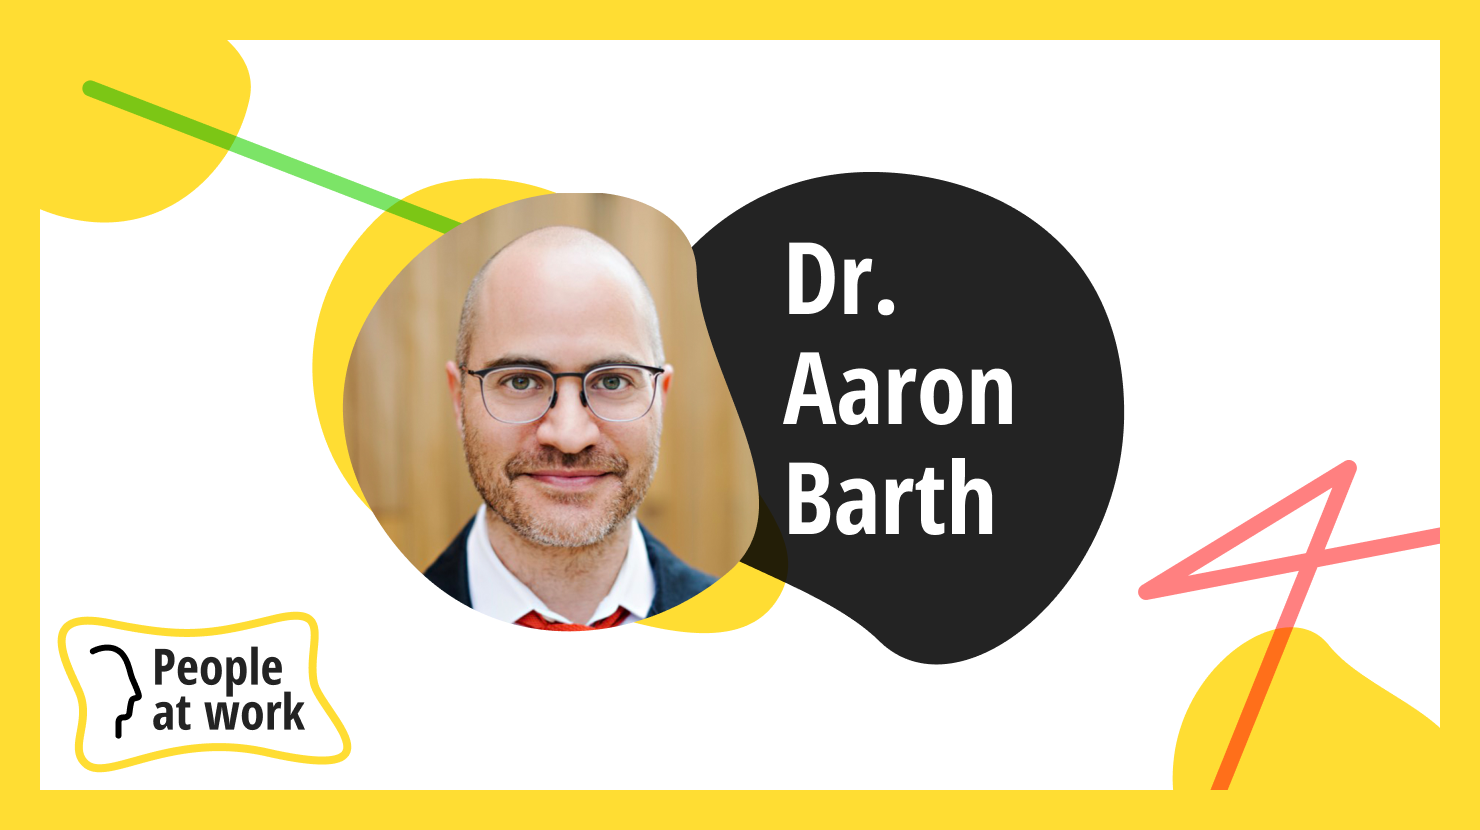 The current state of remote working isn't good for the long-term with Dr. Aaron Barth